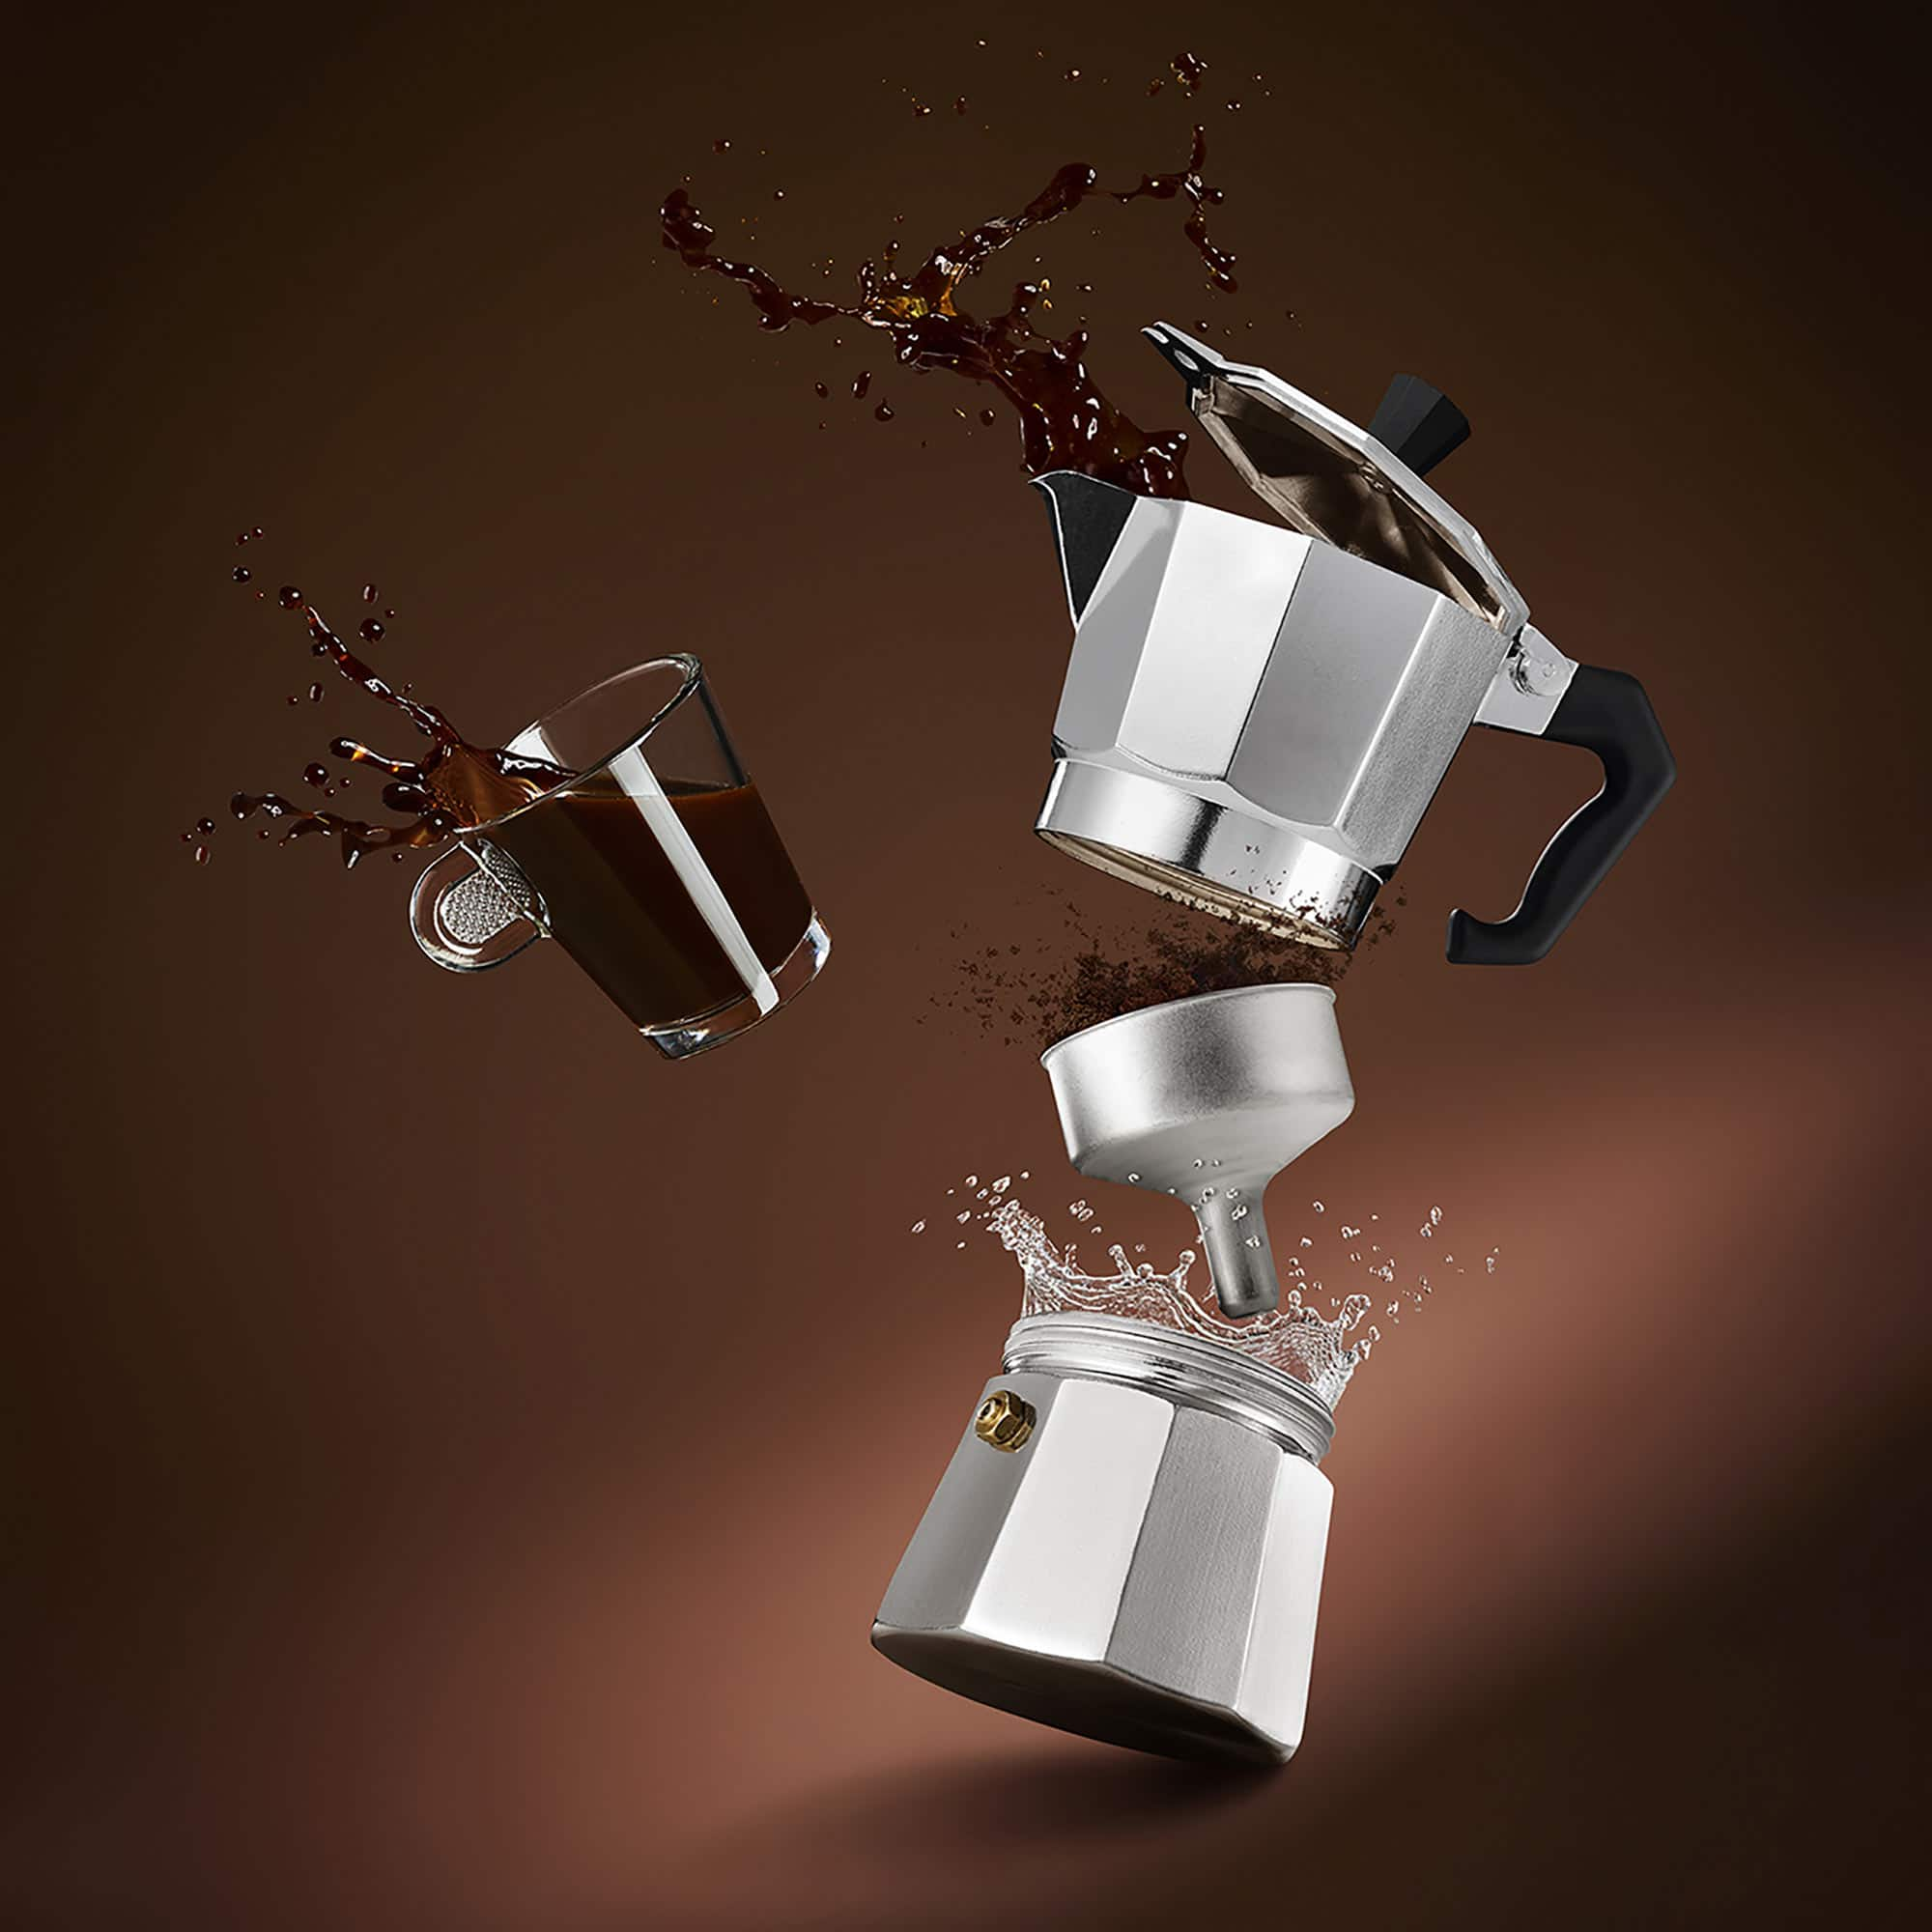 Coffee Moka Still Life Shot by Fotografando